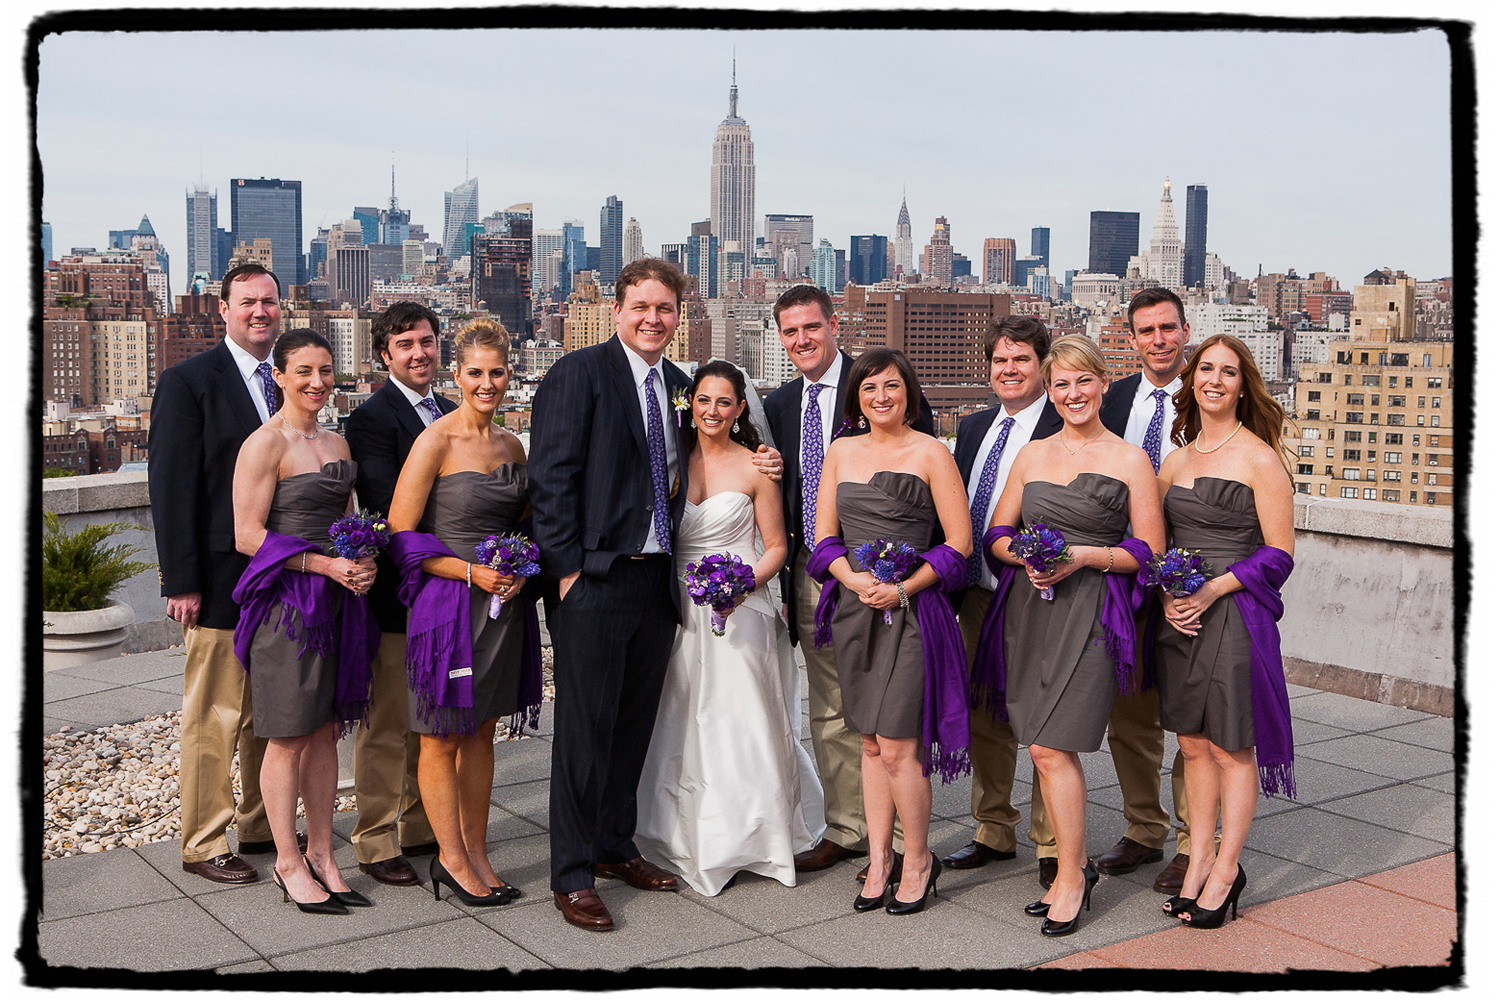 Peter and Allison's manhattan rooftop provided a great backdrop with the skyline.